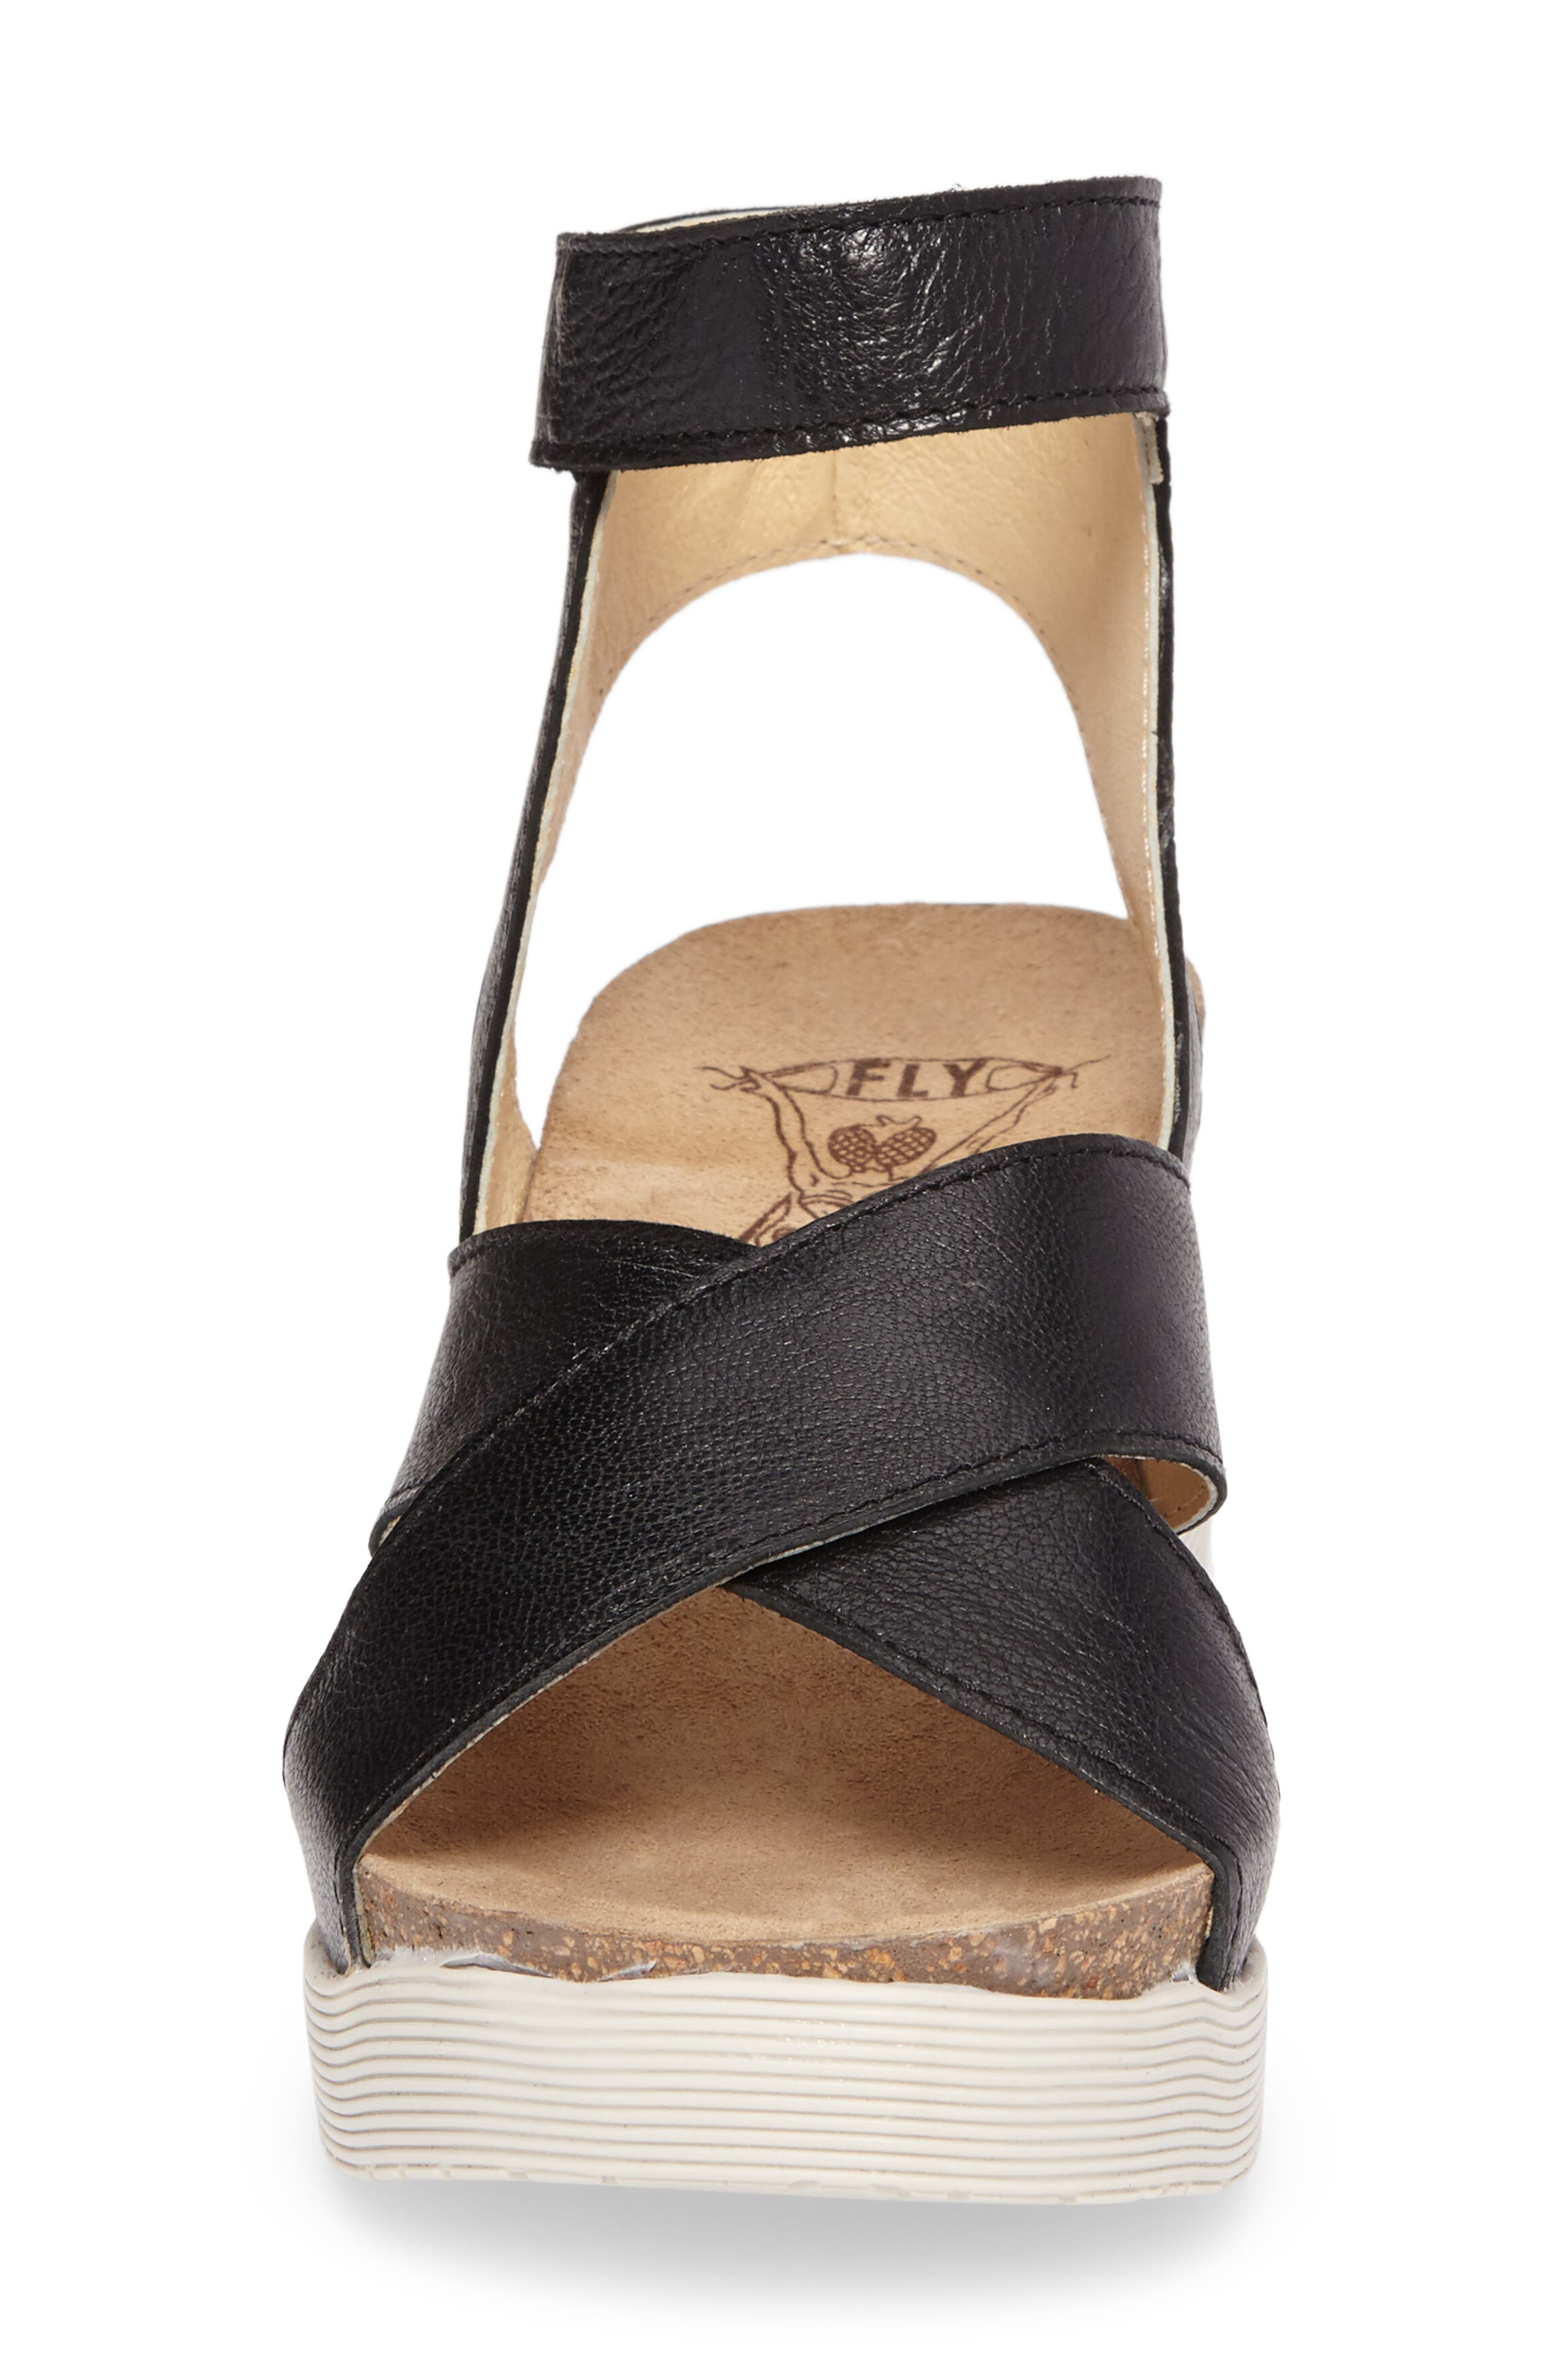 Weel Nubuck Leather Platform Sandal,                             Alternate thumbnail 4, color,                             BLACK MOUSSE LEATHER